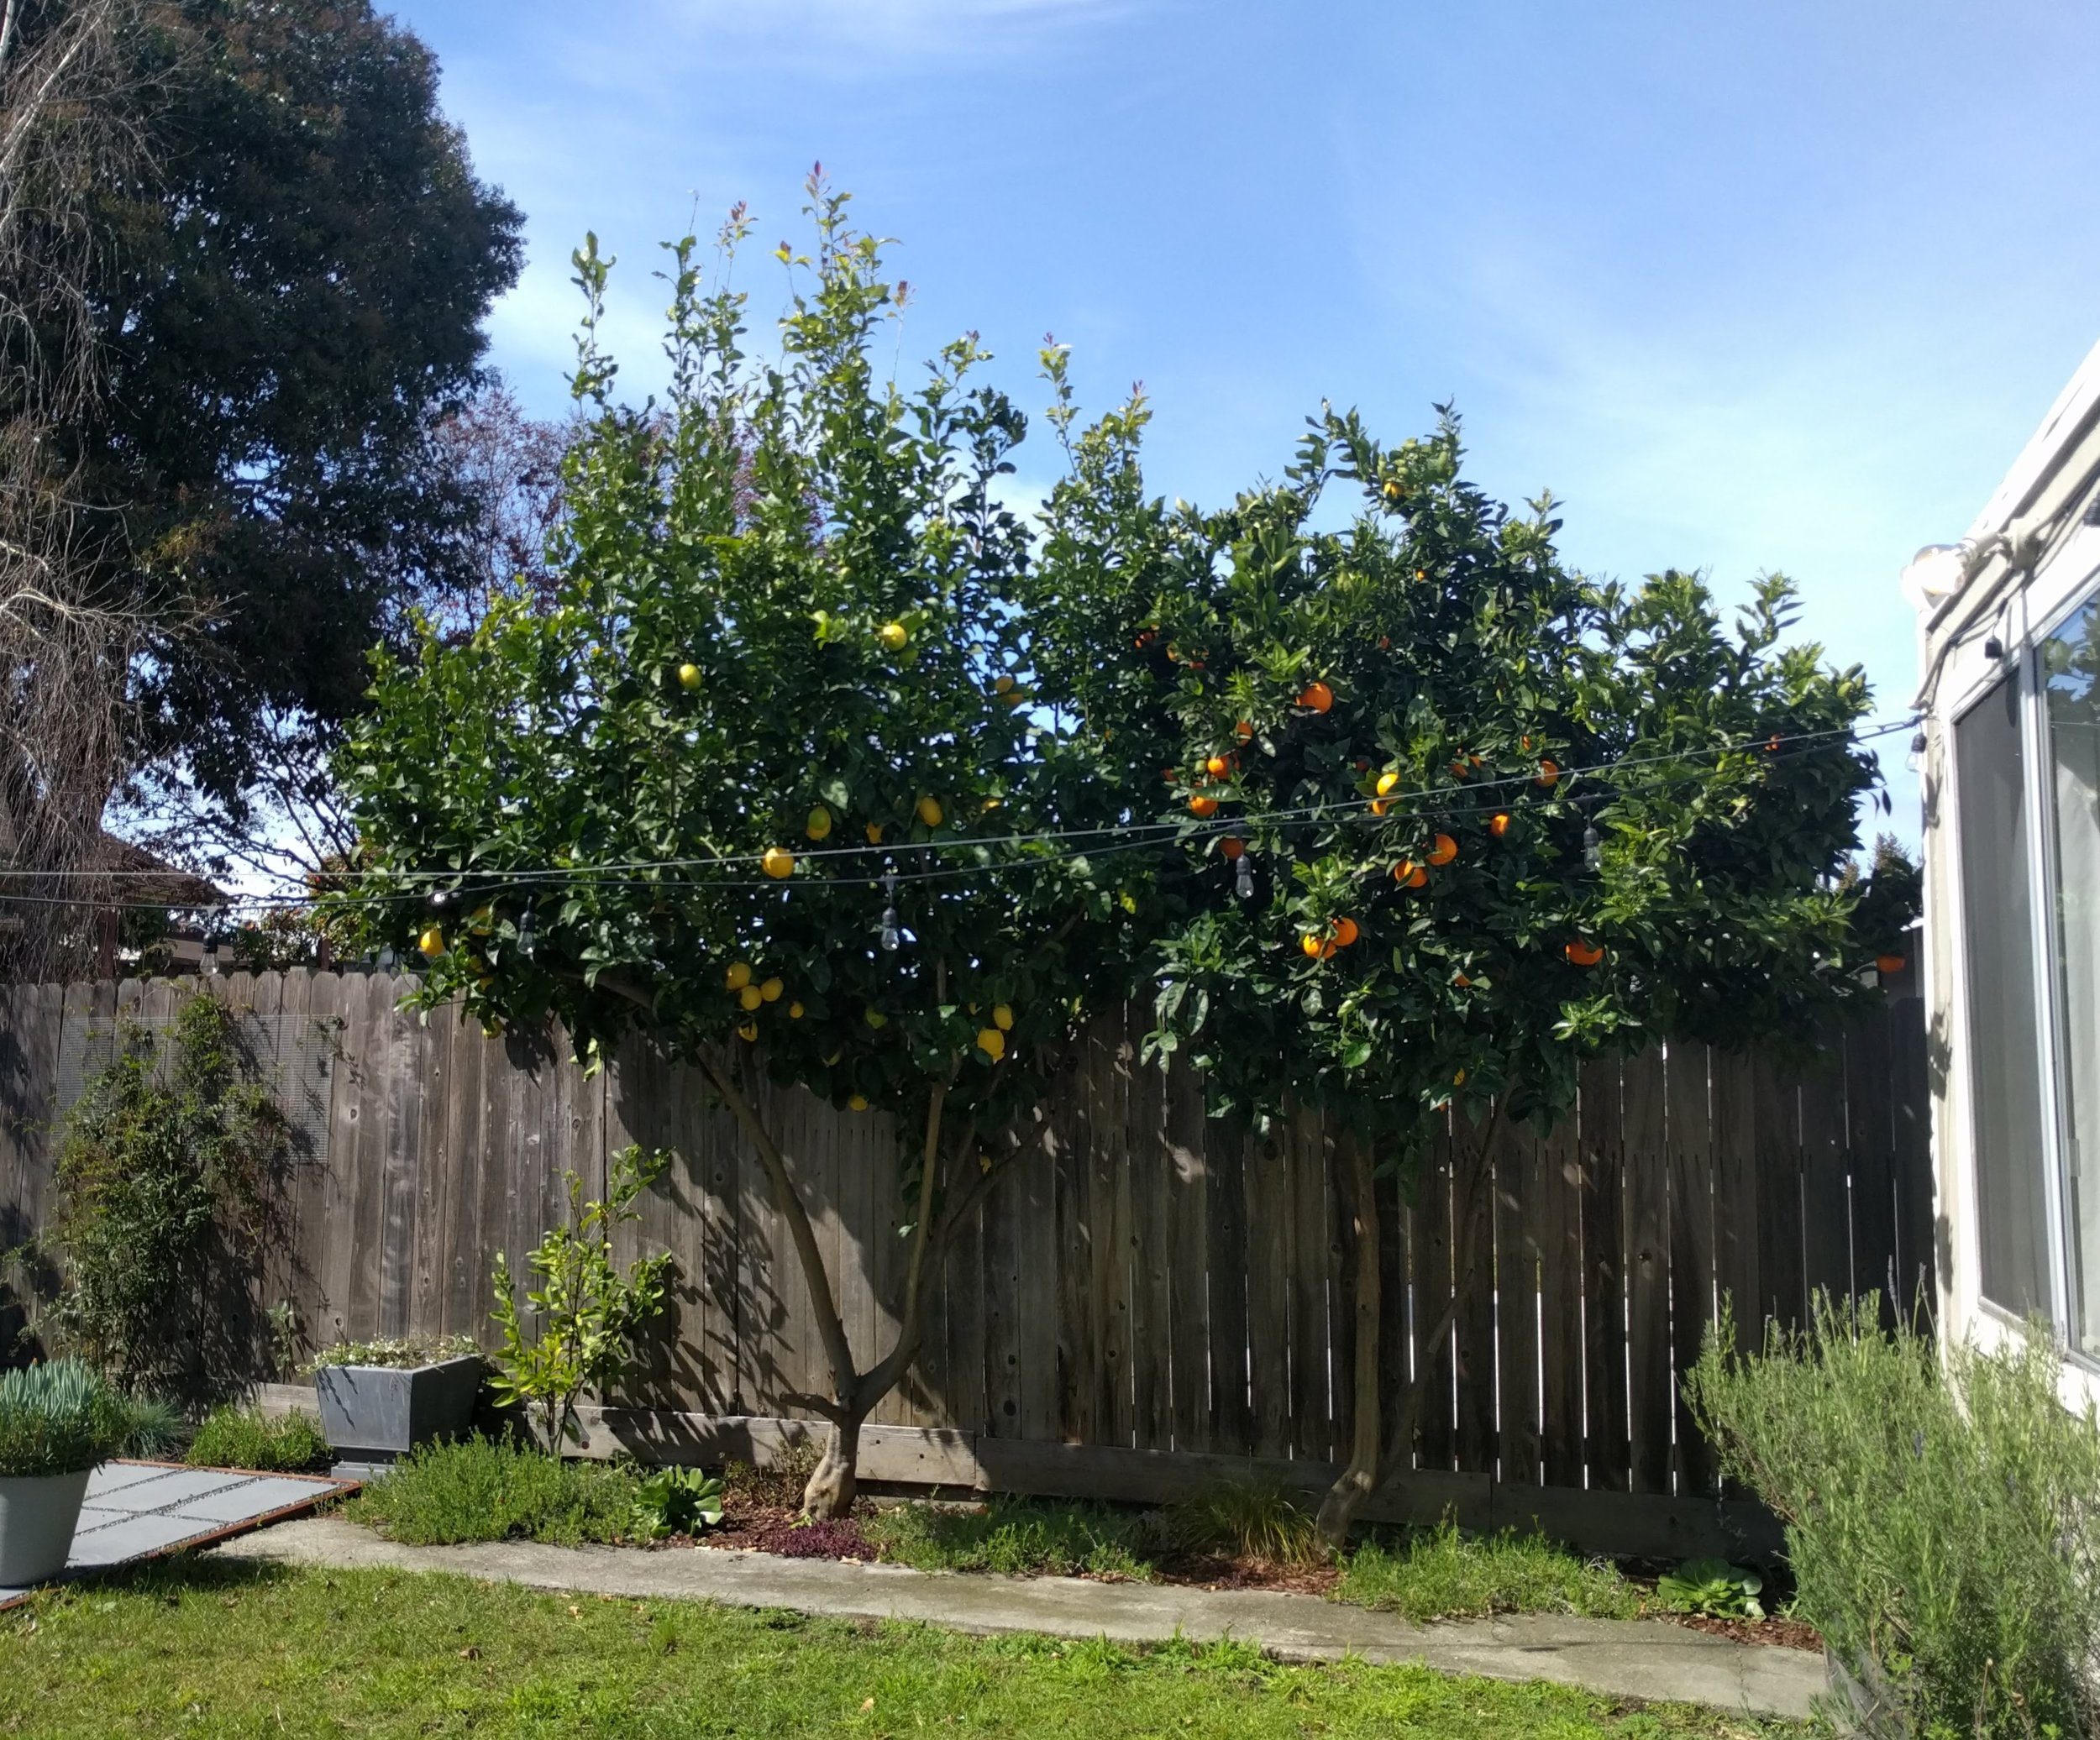 Mature citrus trees in the back garden of Doug Fuller's beautifully renovated bungalow listing at  875 45th Street  in NOBE.